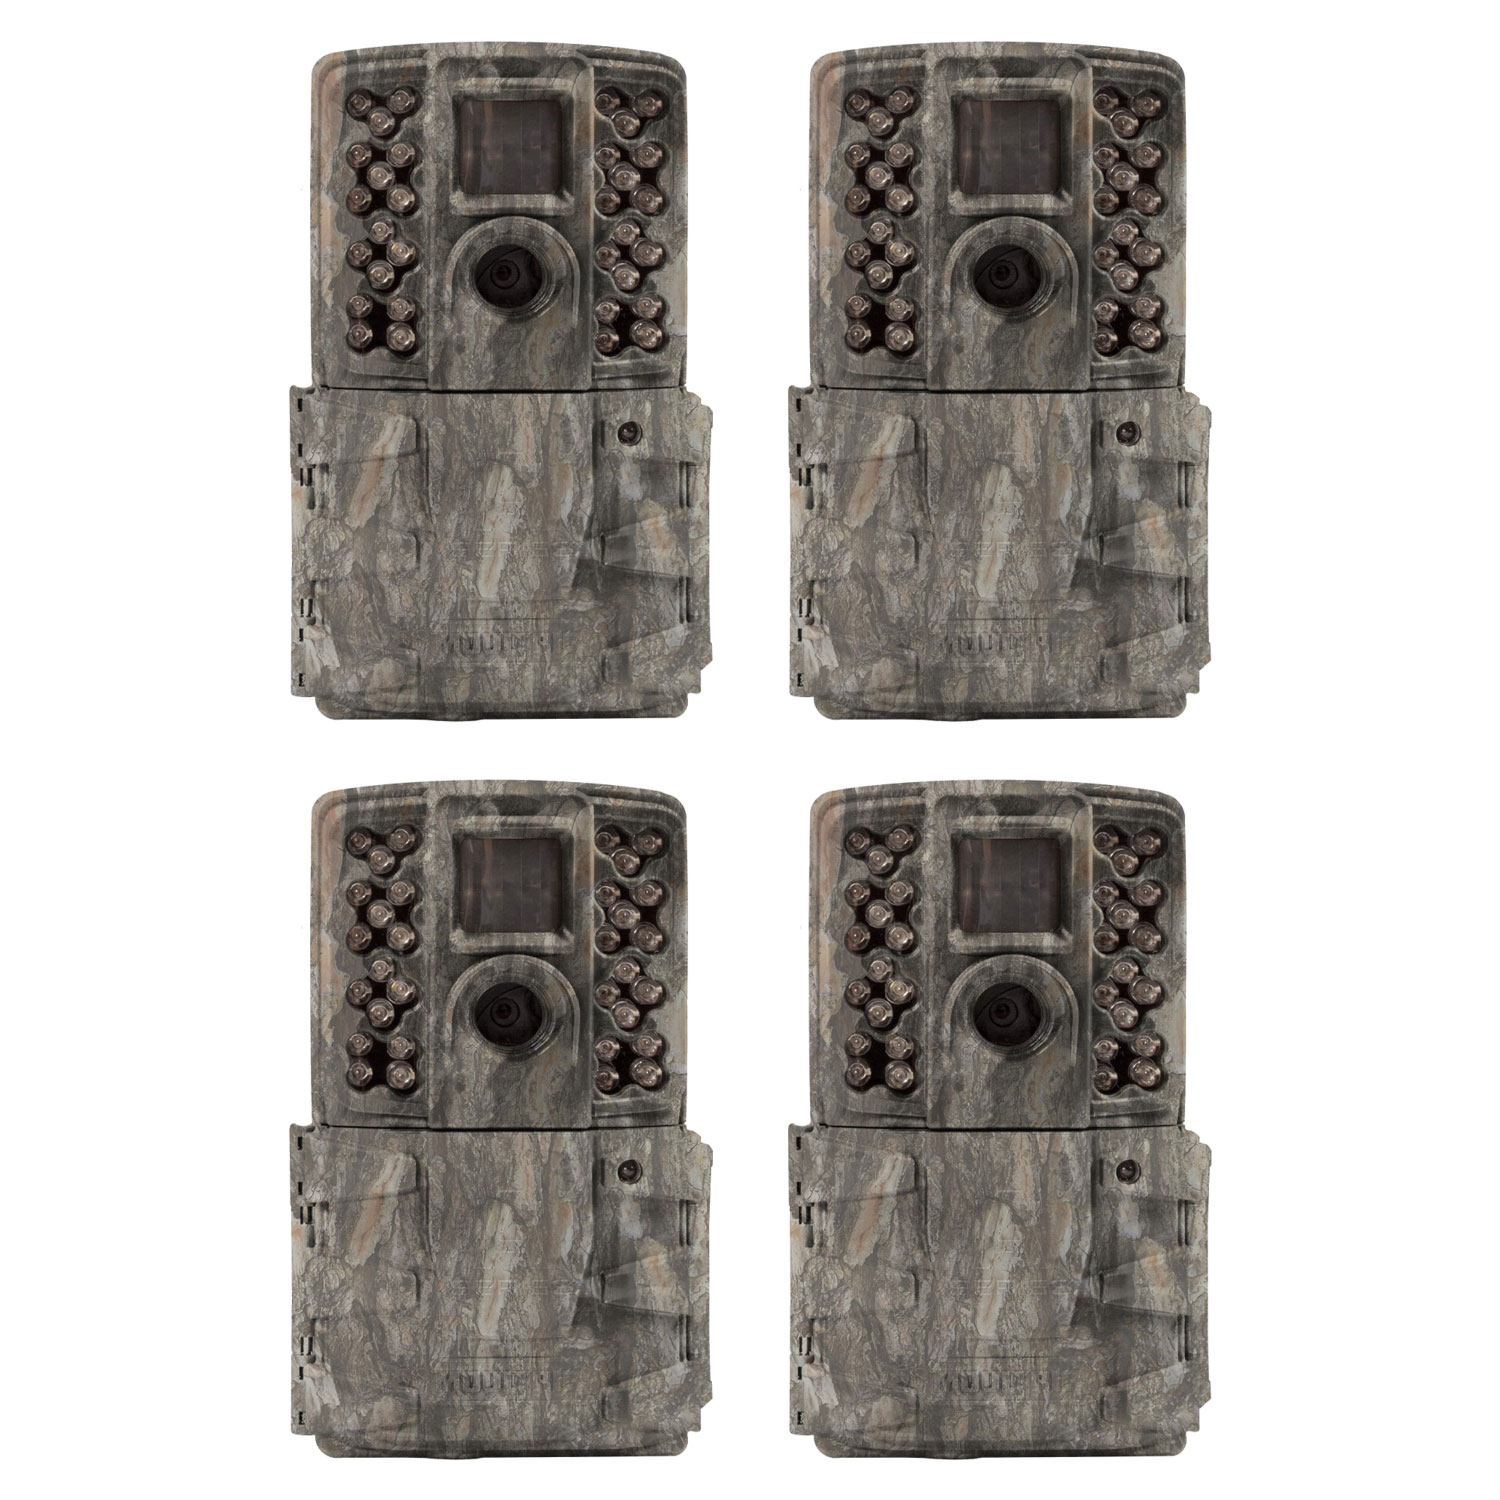 Moultrie A-40i Pro 14MP No Glow Invisible Infrared Game Trail Camera (4 Pack)